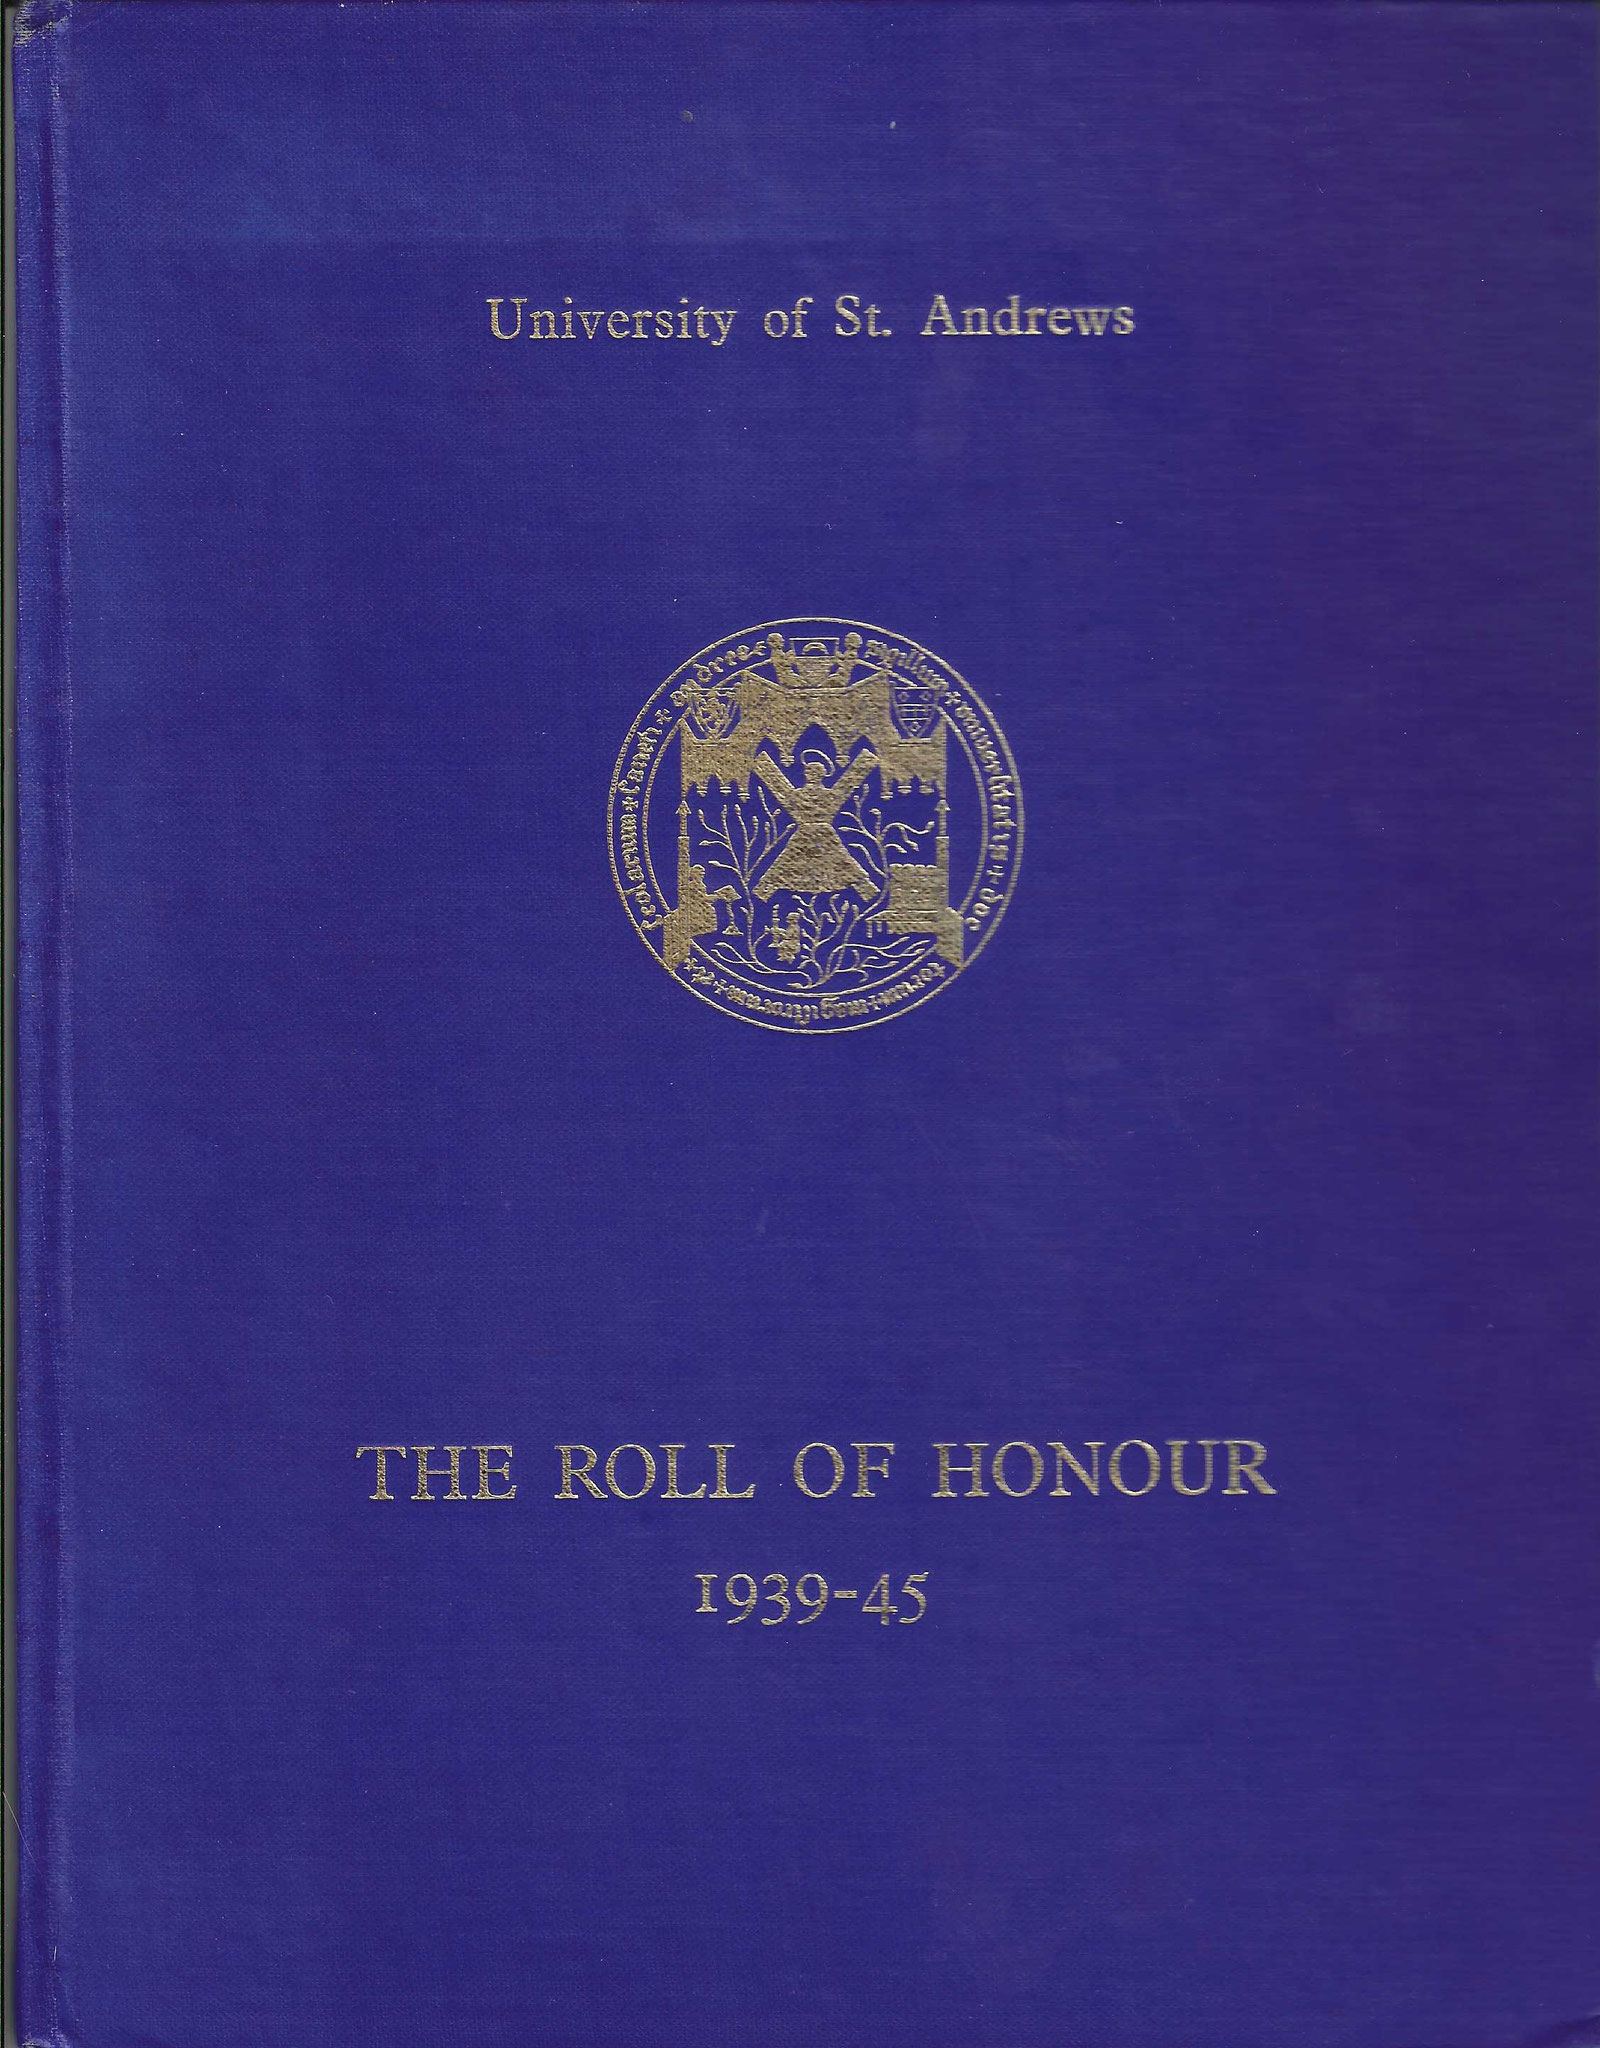 Roll of Honour, University of St. Andrews, 1950 (collection P. Reinders)